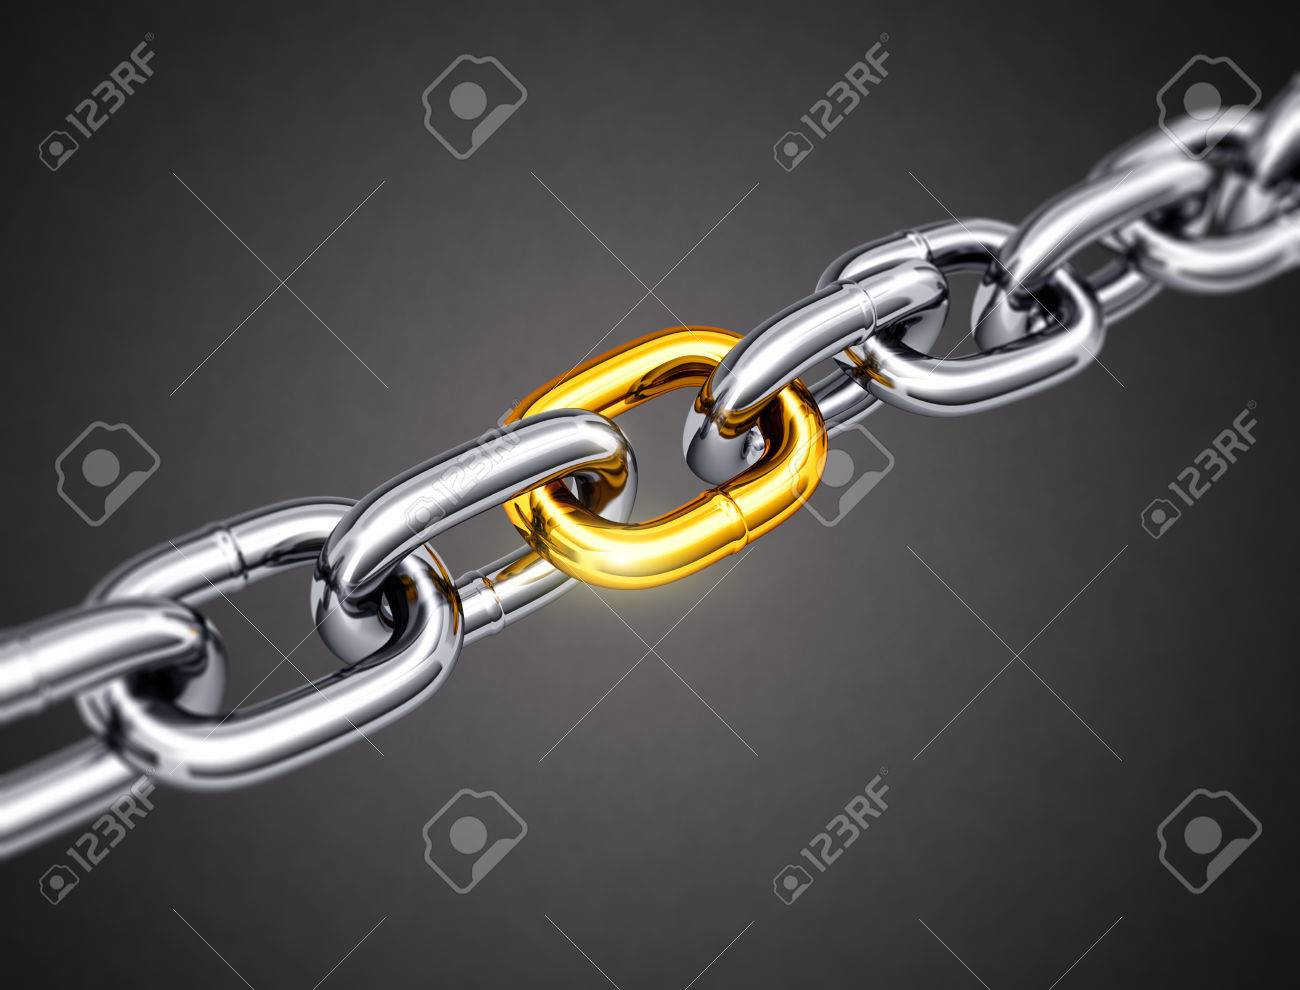 Steel chain with a gold link - 37407301